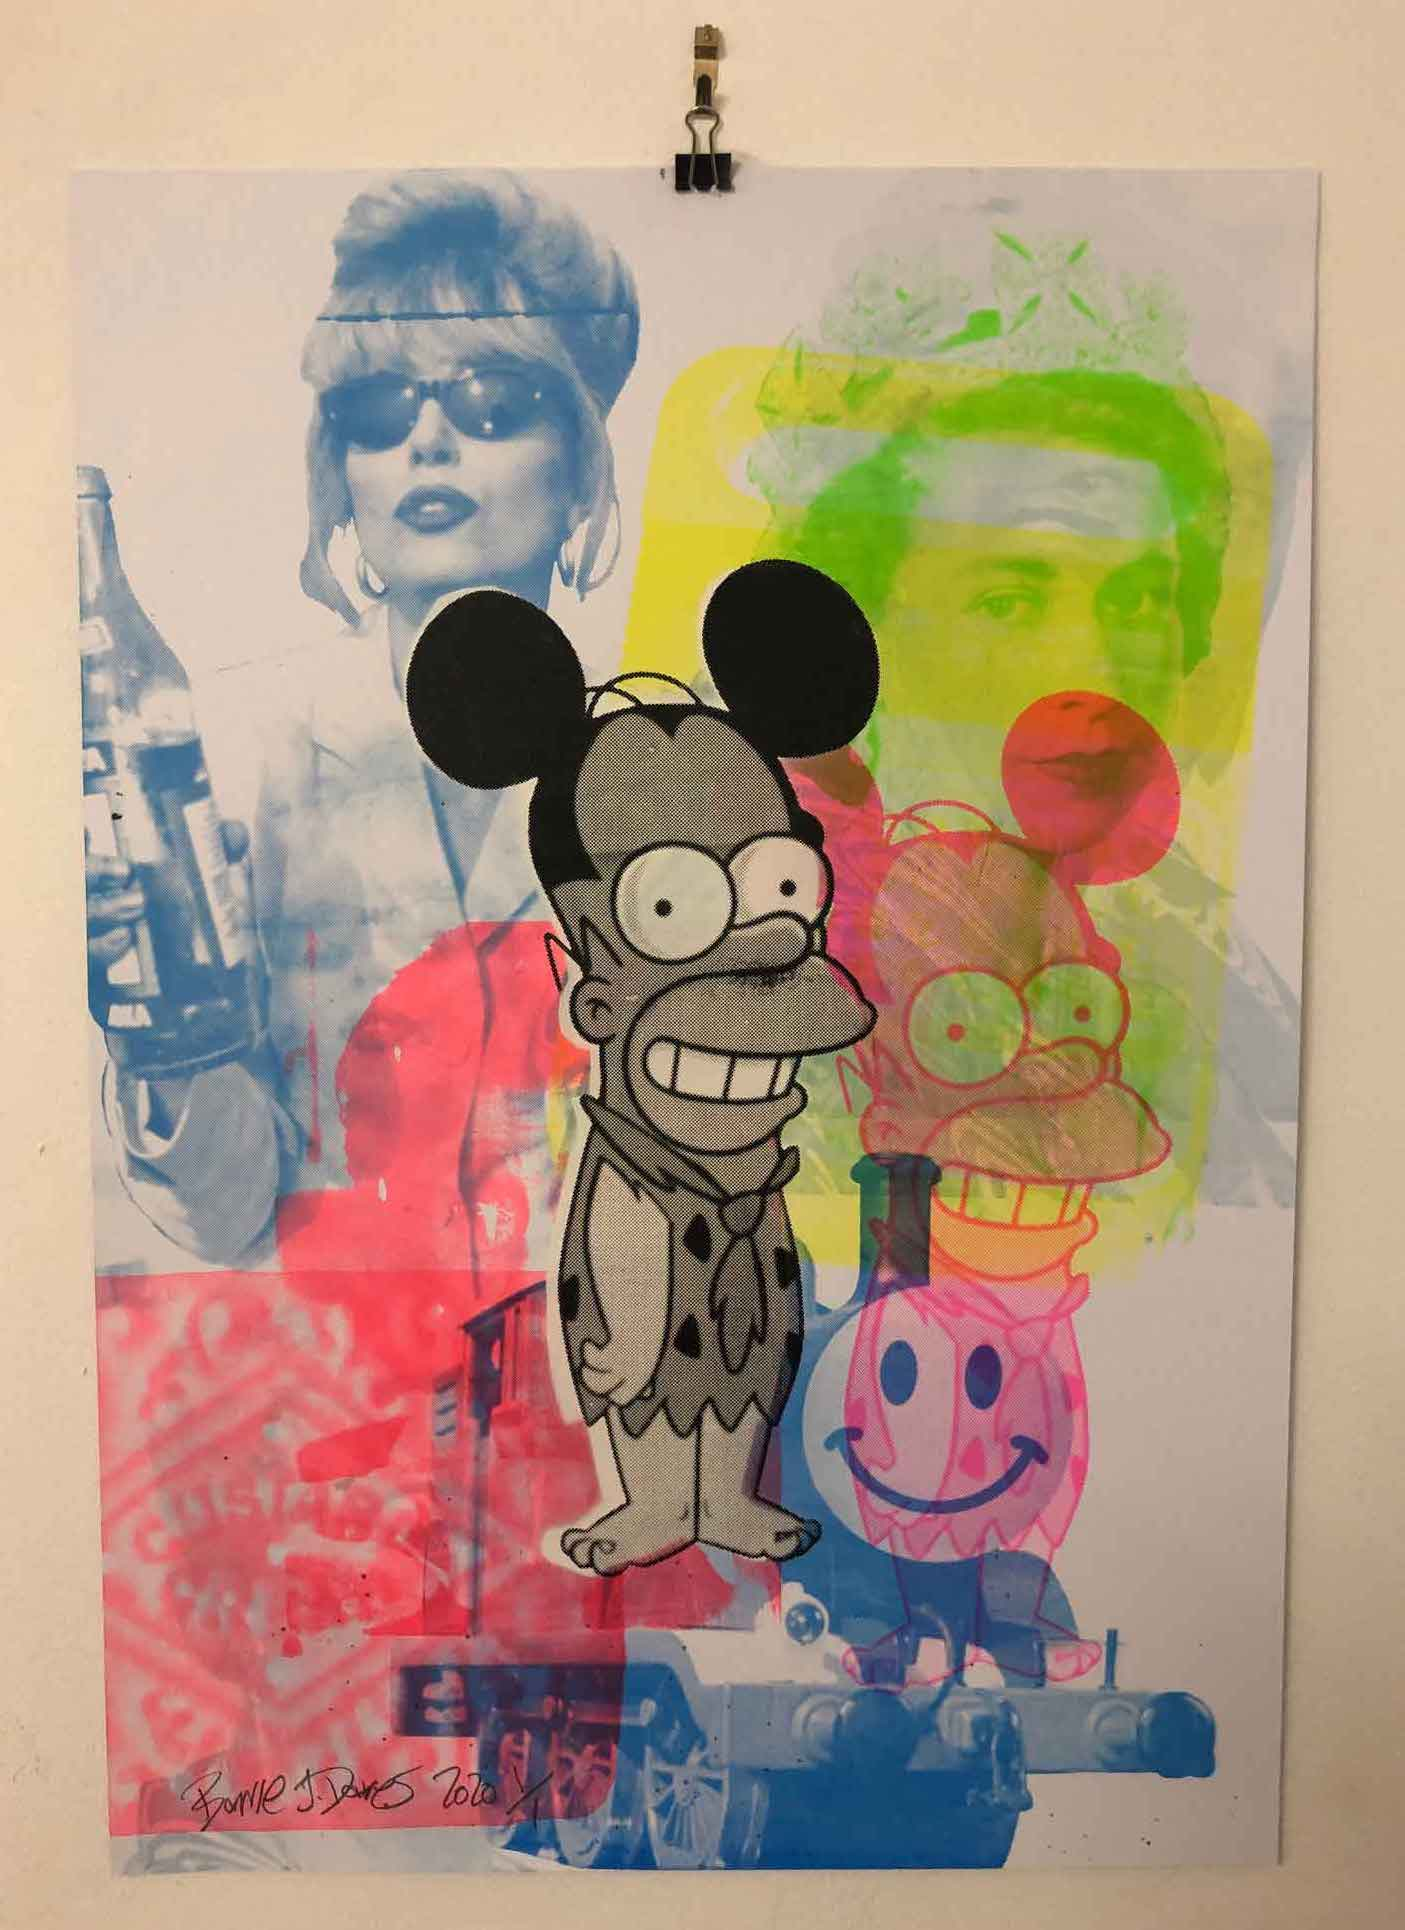 Monster Mash Graffiti Pop Art Print by Barrie J Davies 2020 - unframed Silkscreen print on paper (hand finished) edition of 1/1 - A2 size 42cm x 59.4cm. Urban Pop Art and Street art inspired Artist based in Brighton England UK - Pop Art Paintings, Street Art Prints & collectables.